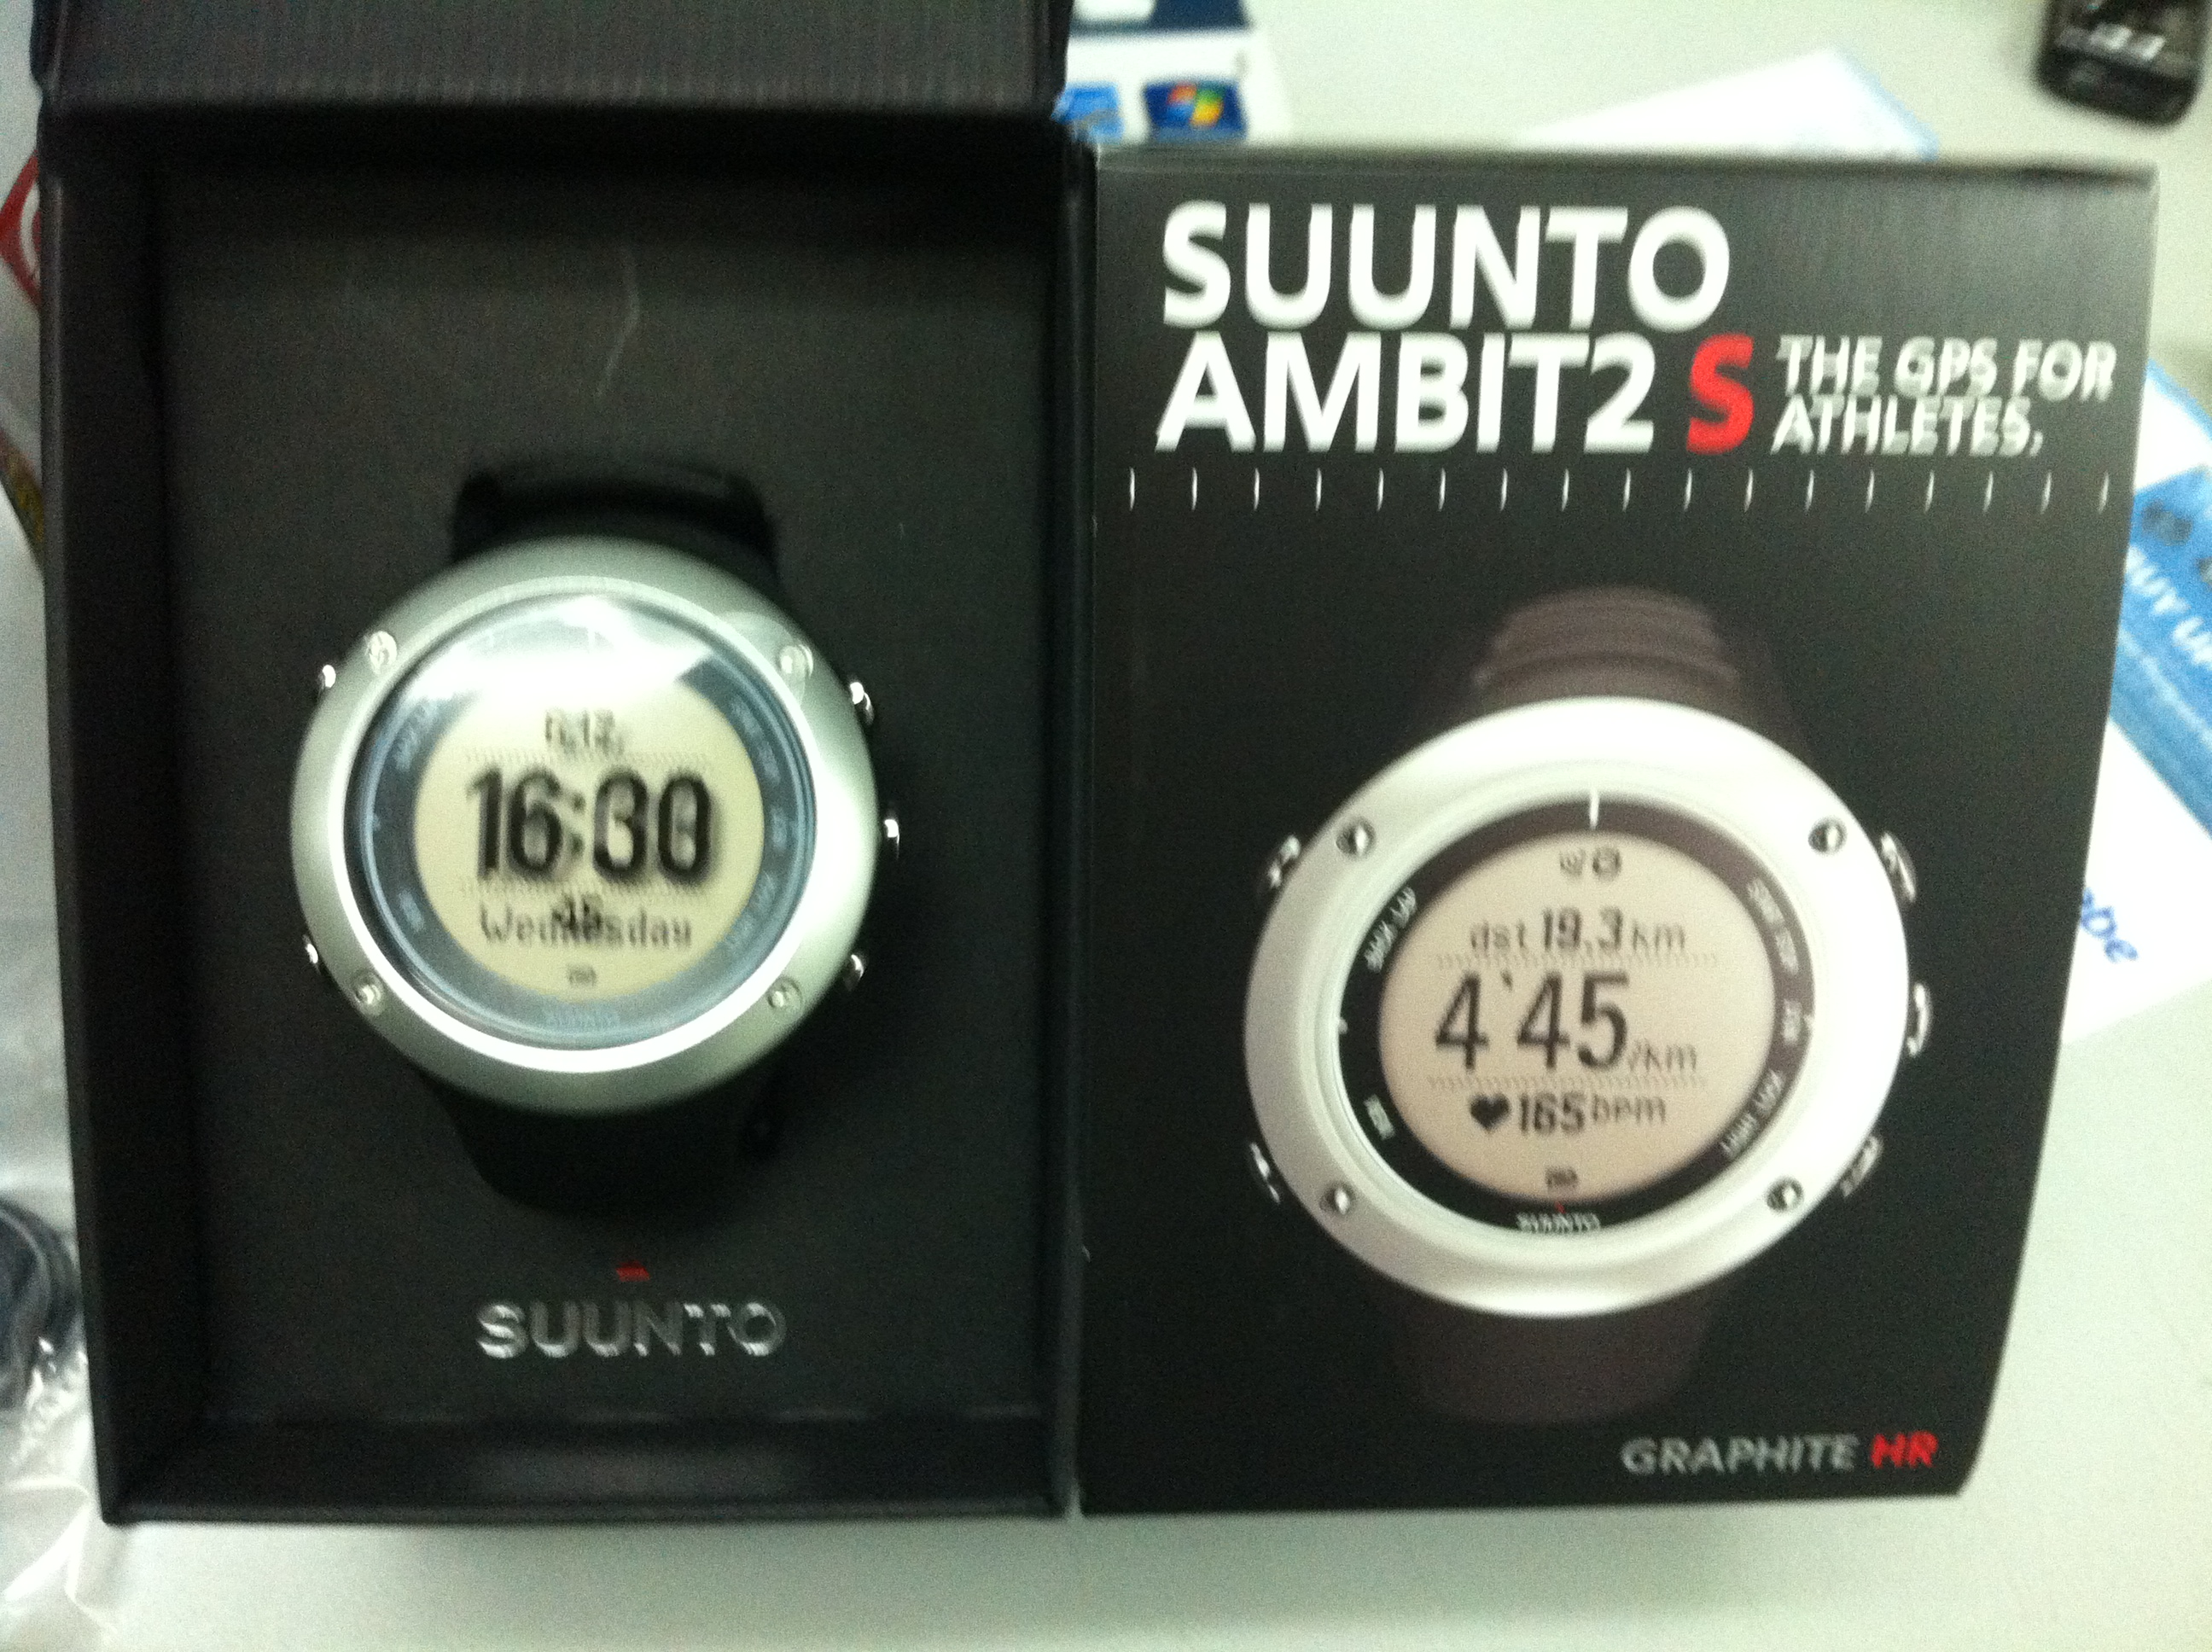 how to reset suunto ambit2 watch